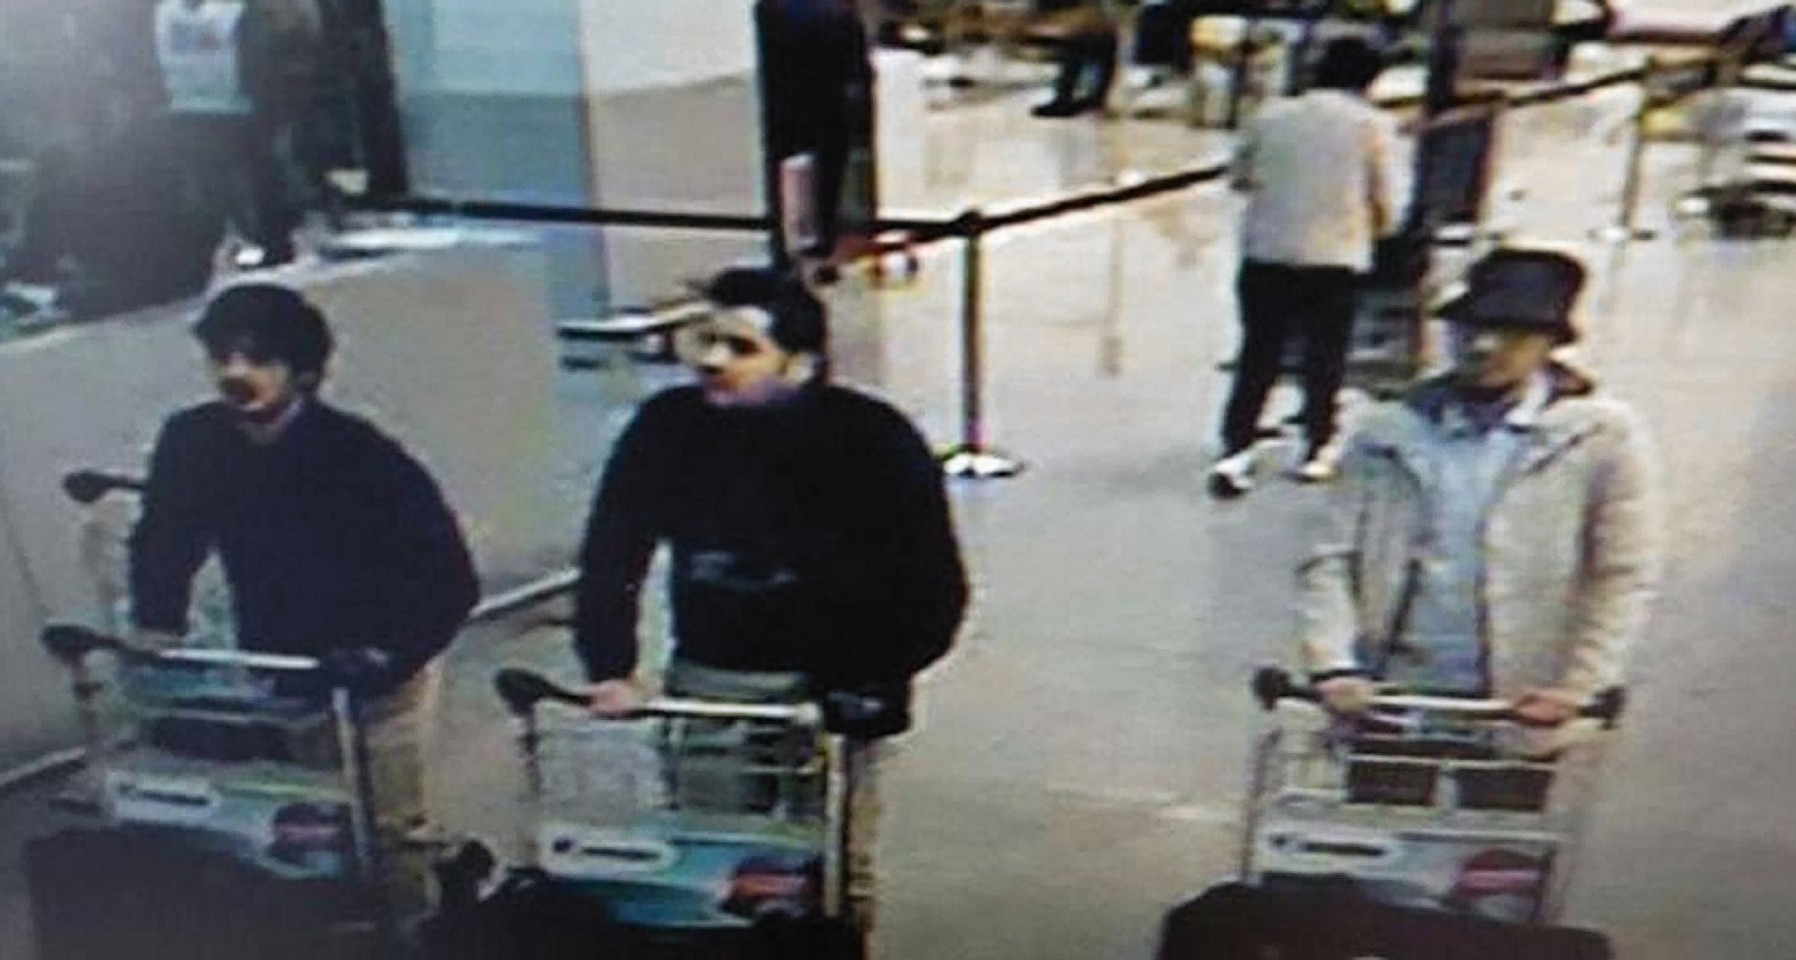 A CCTV image of three men said to be suspected of being behind the airport attacks